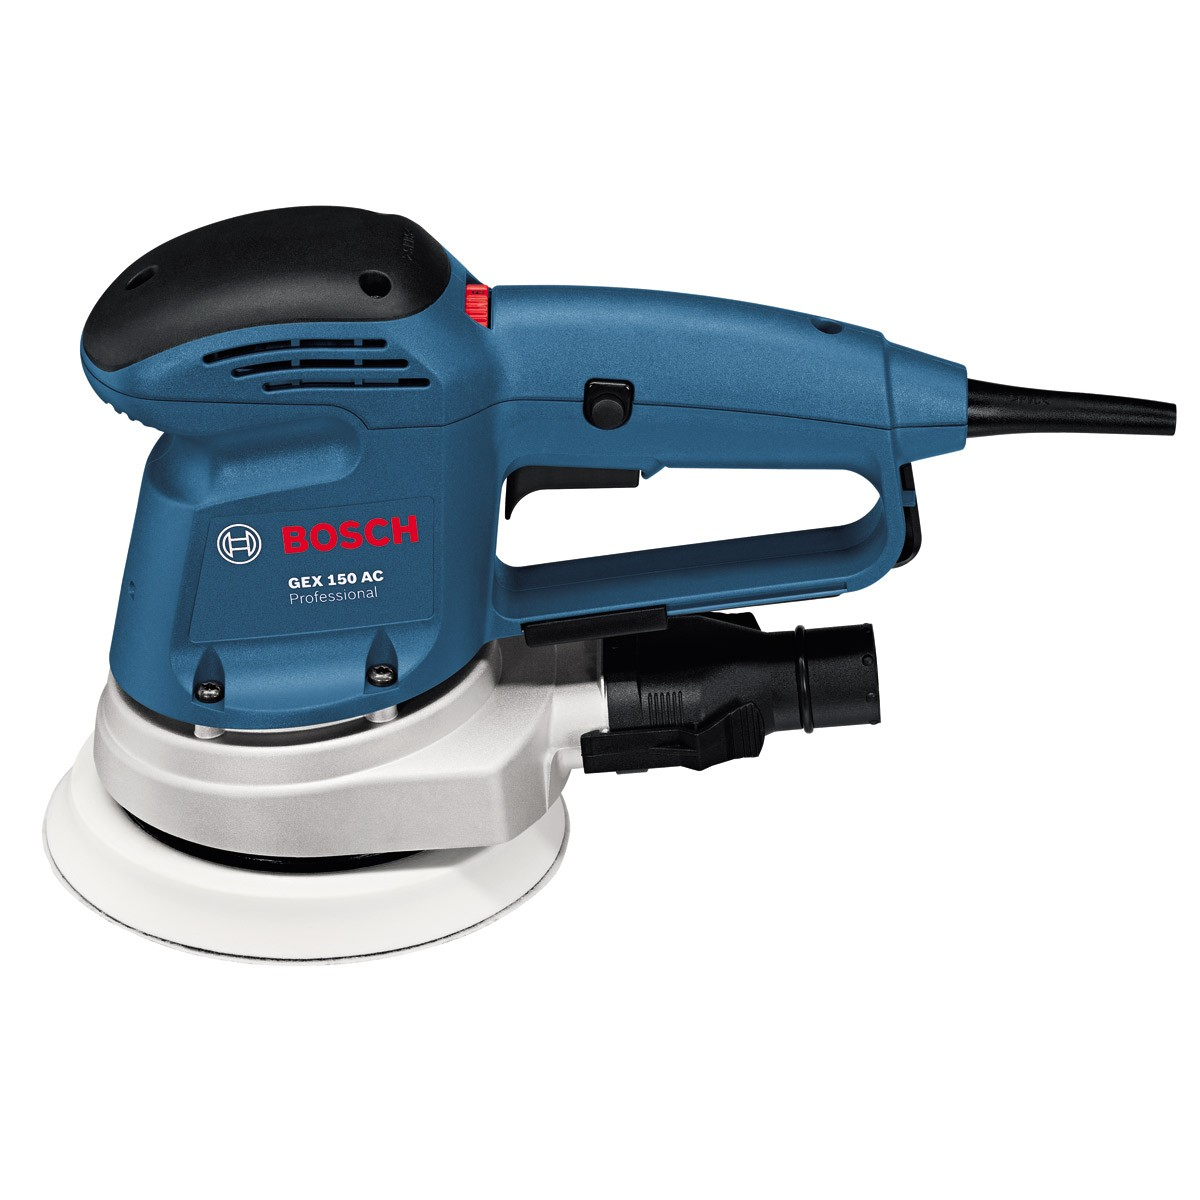 bosch gex 150 ac random orbit sander powertool world. Black Bedroom Furniture Sets. Home Design Ideas